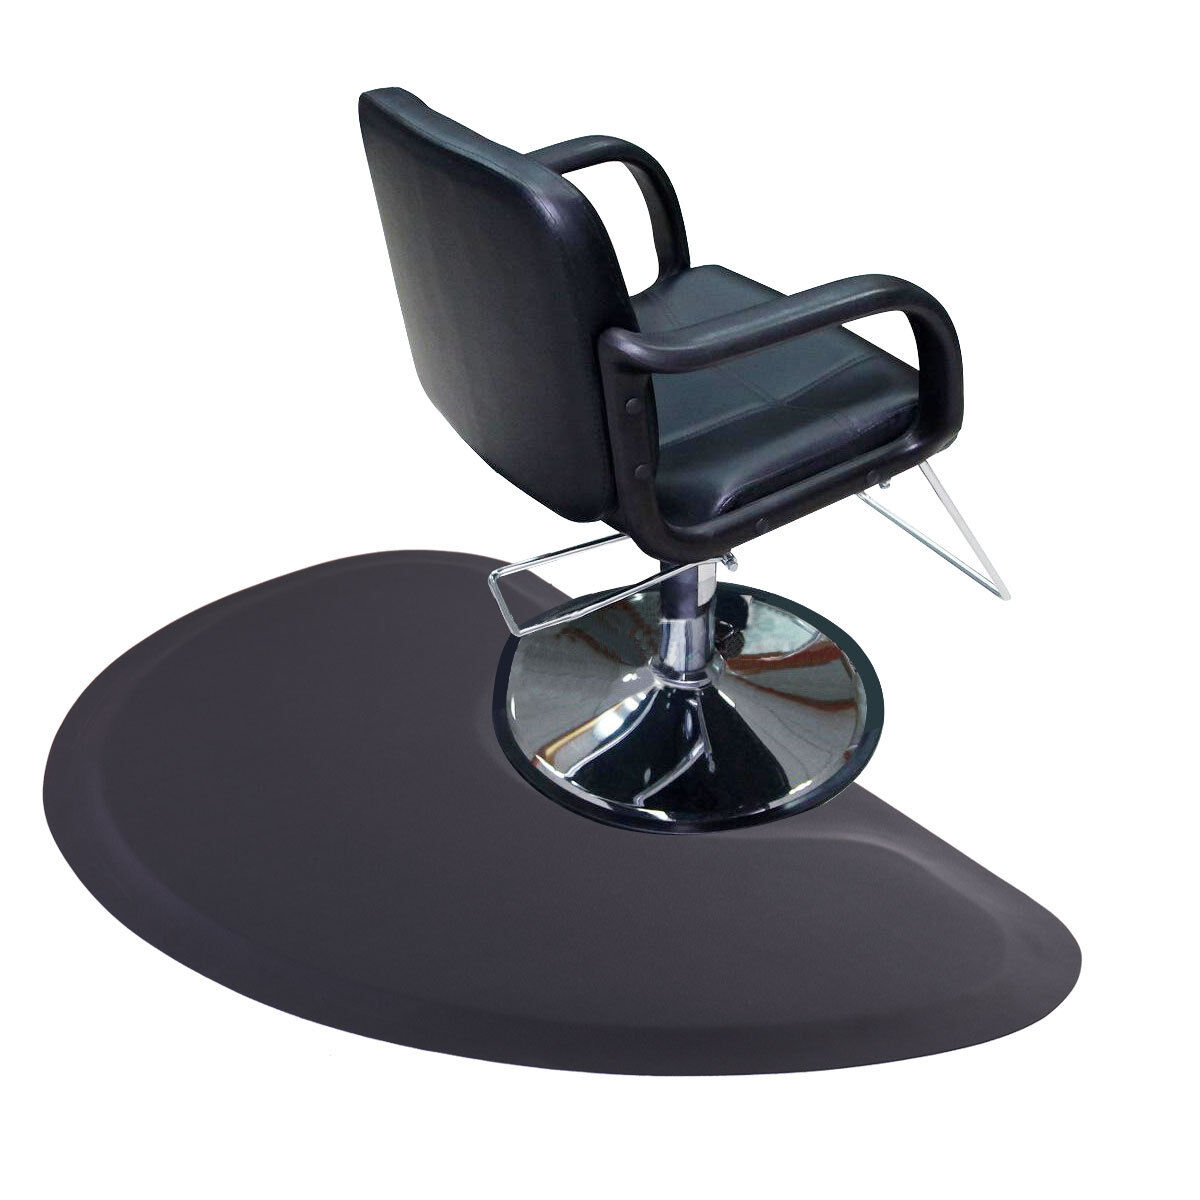 "Black Semi Circle 5'x3' 1/2"" Barber Salon Anti Fatigue Floor"